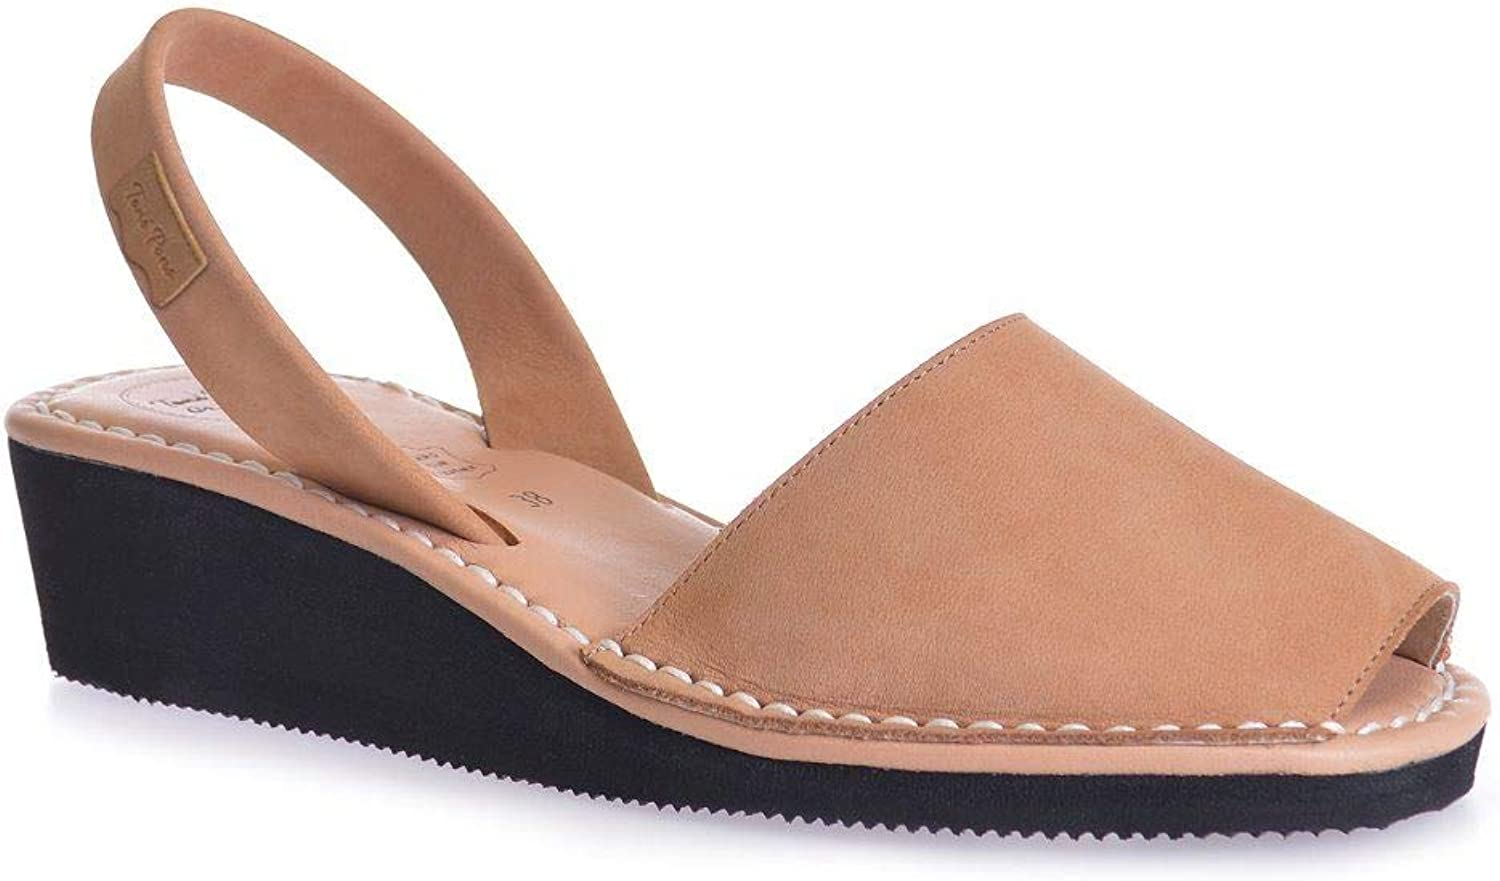 Toni Pons INCA-N - Abarca for Women in Nubuck.